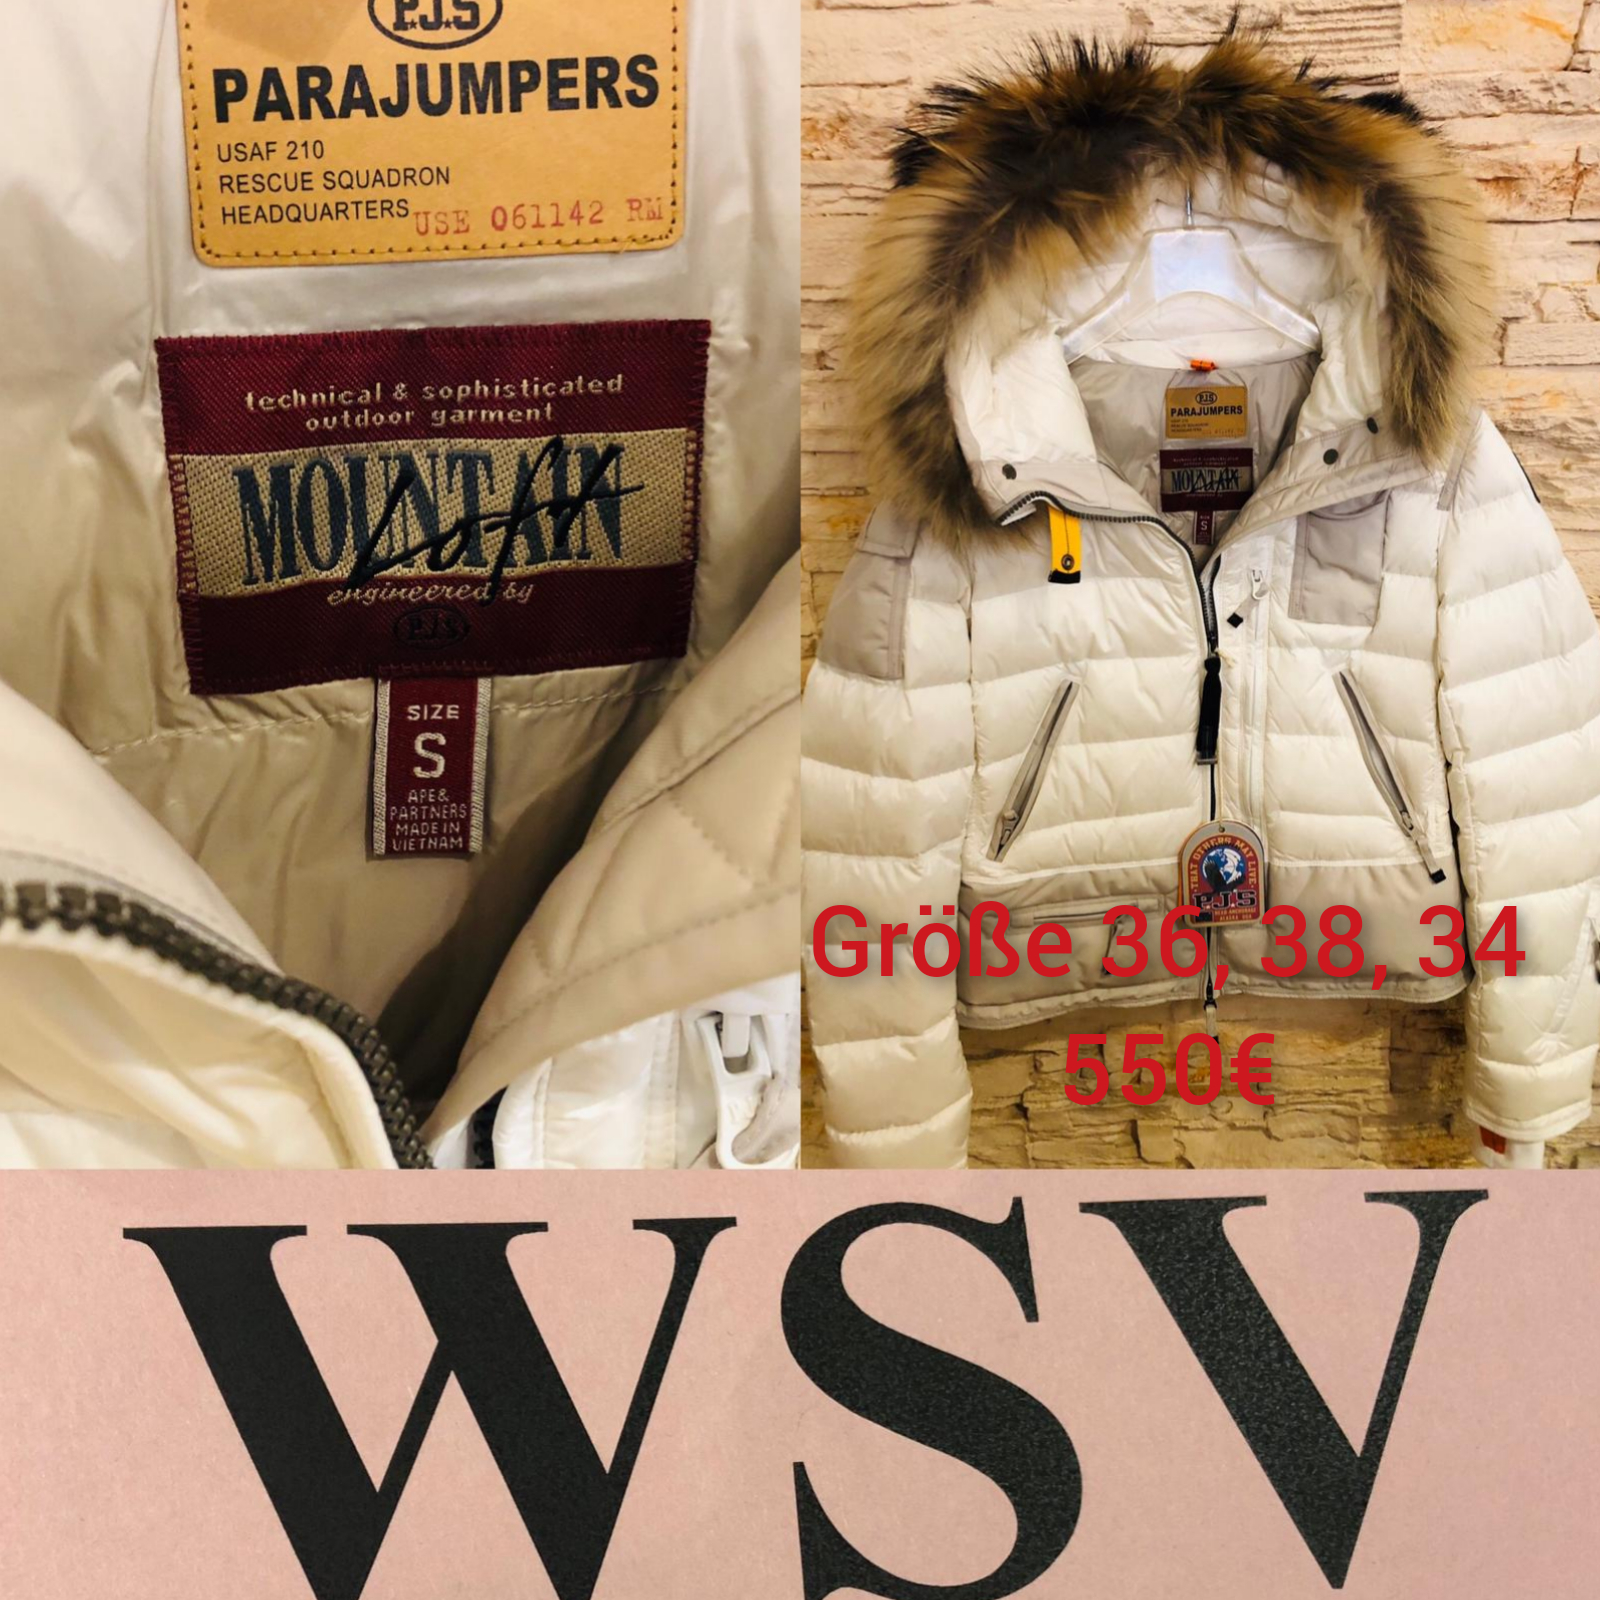 Parajumpers WSV